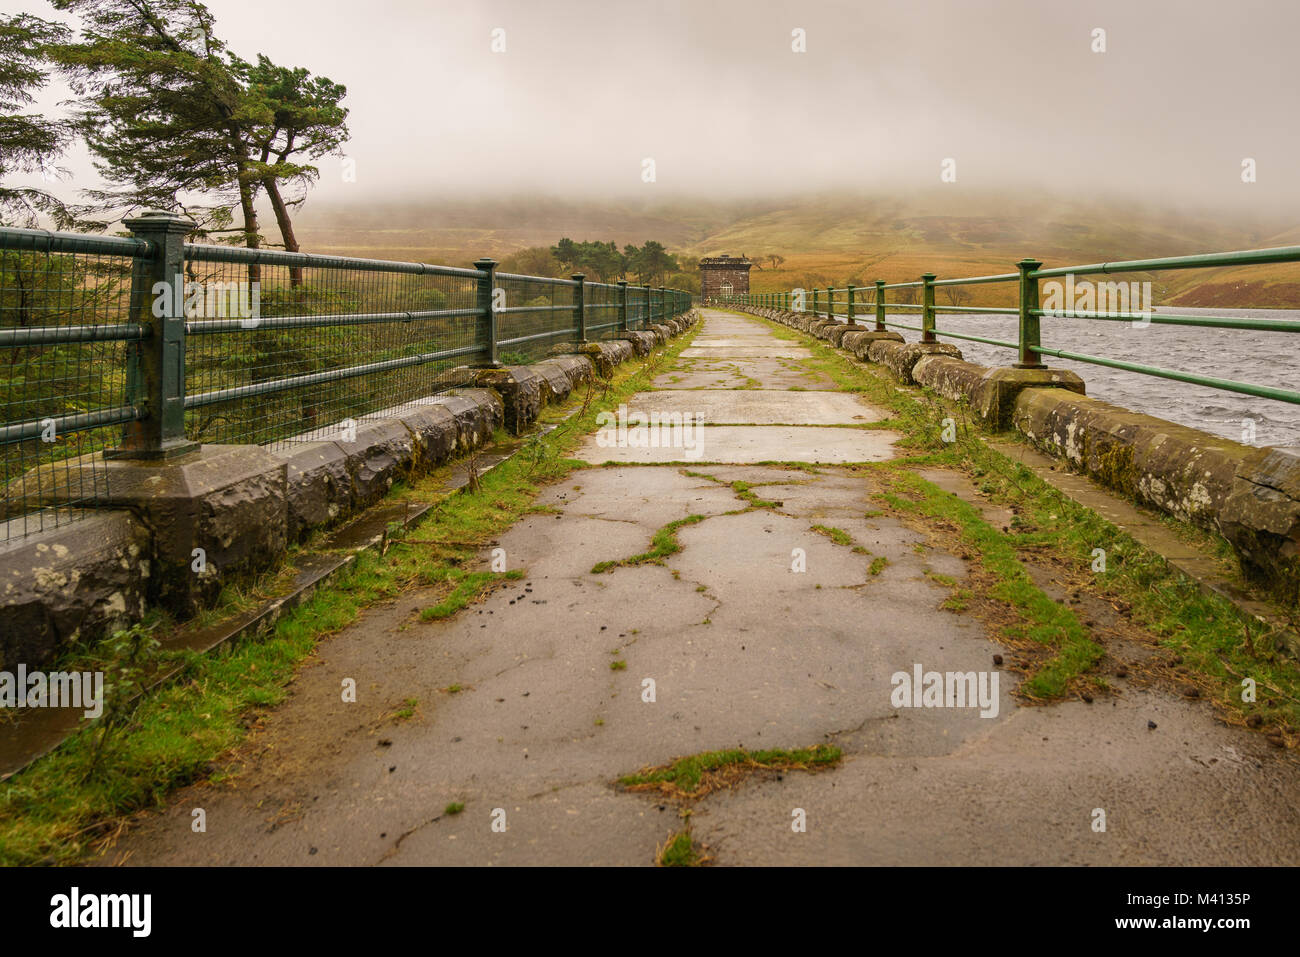 A walk on the dam of the Grwyne Fawr Reservoir in the Brecon Beacons National Park, Powys, Wales, UK - Stock Image